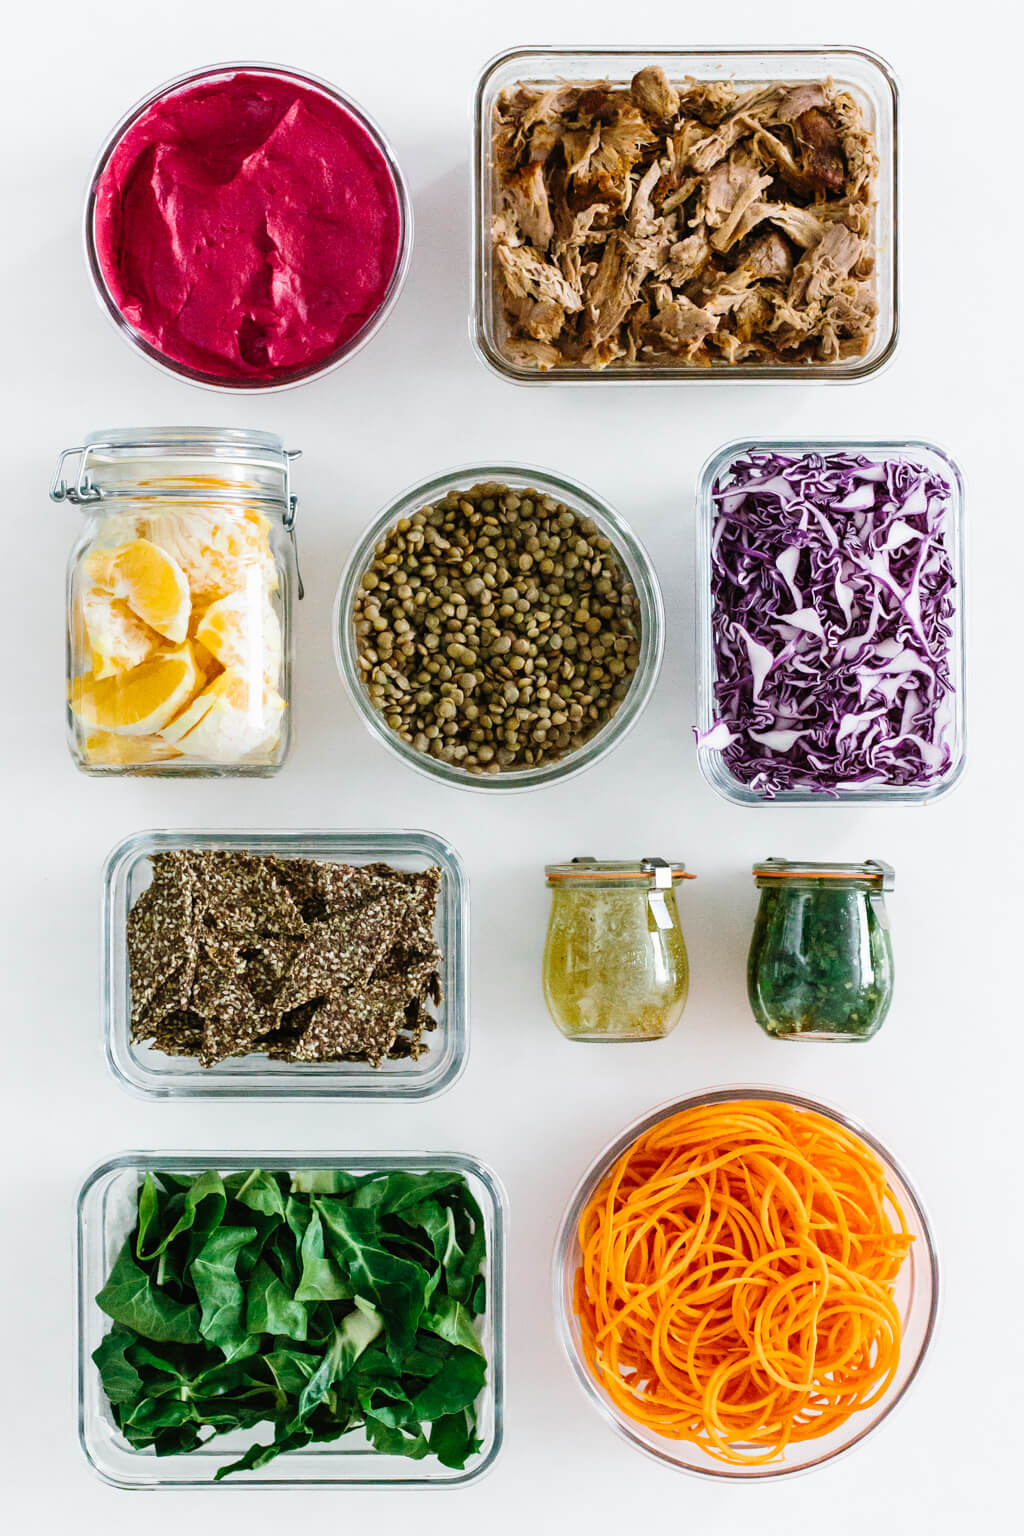 Meal prep for winter with hearty, nourishing and healthy recipes.